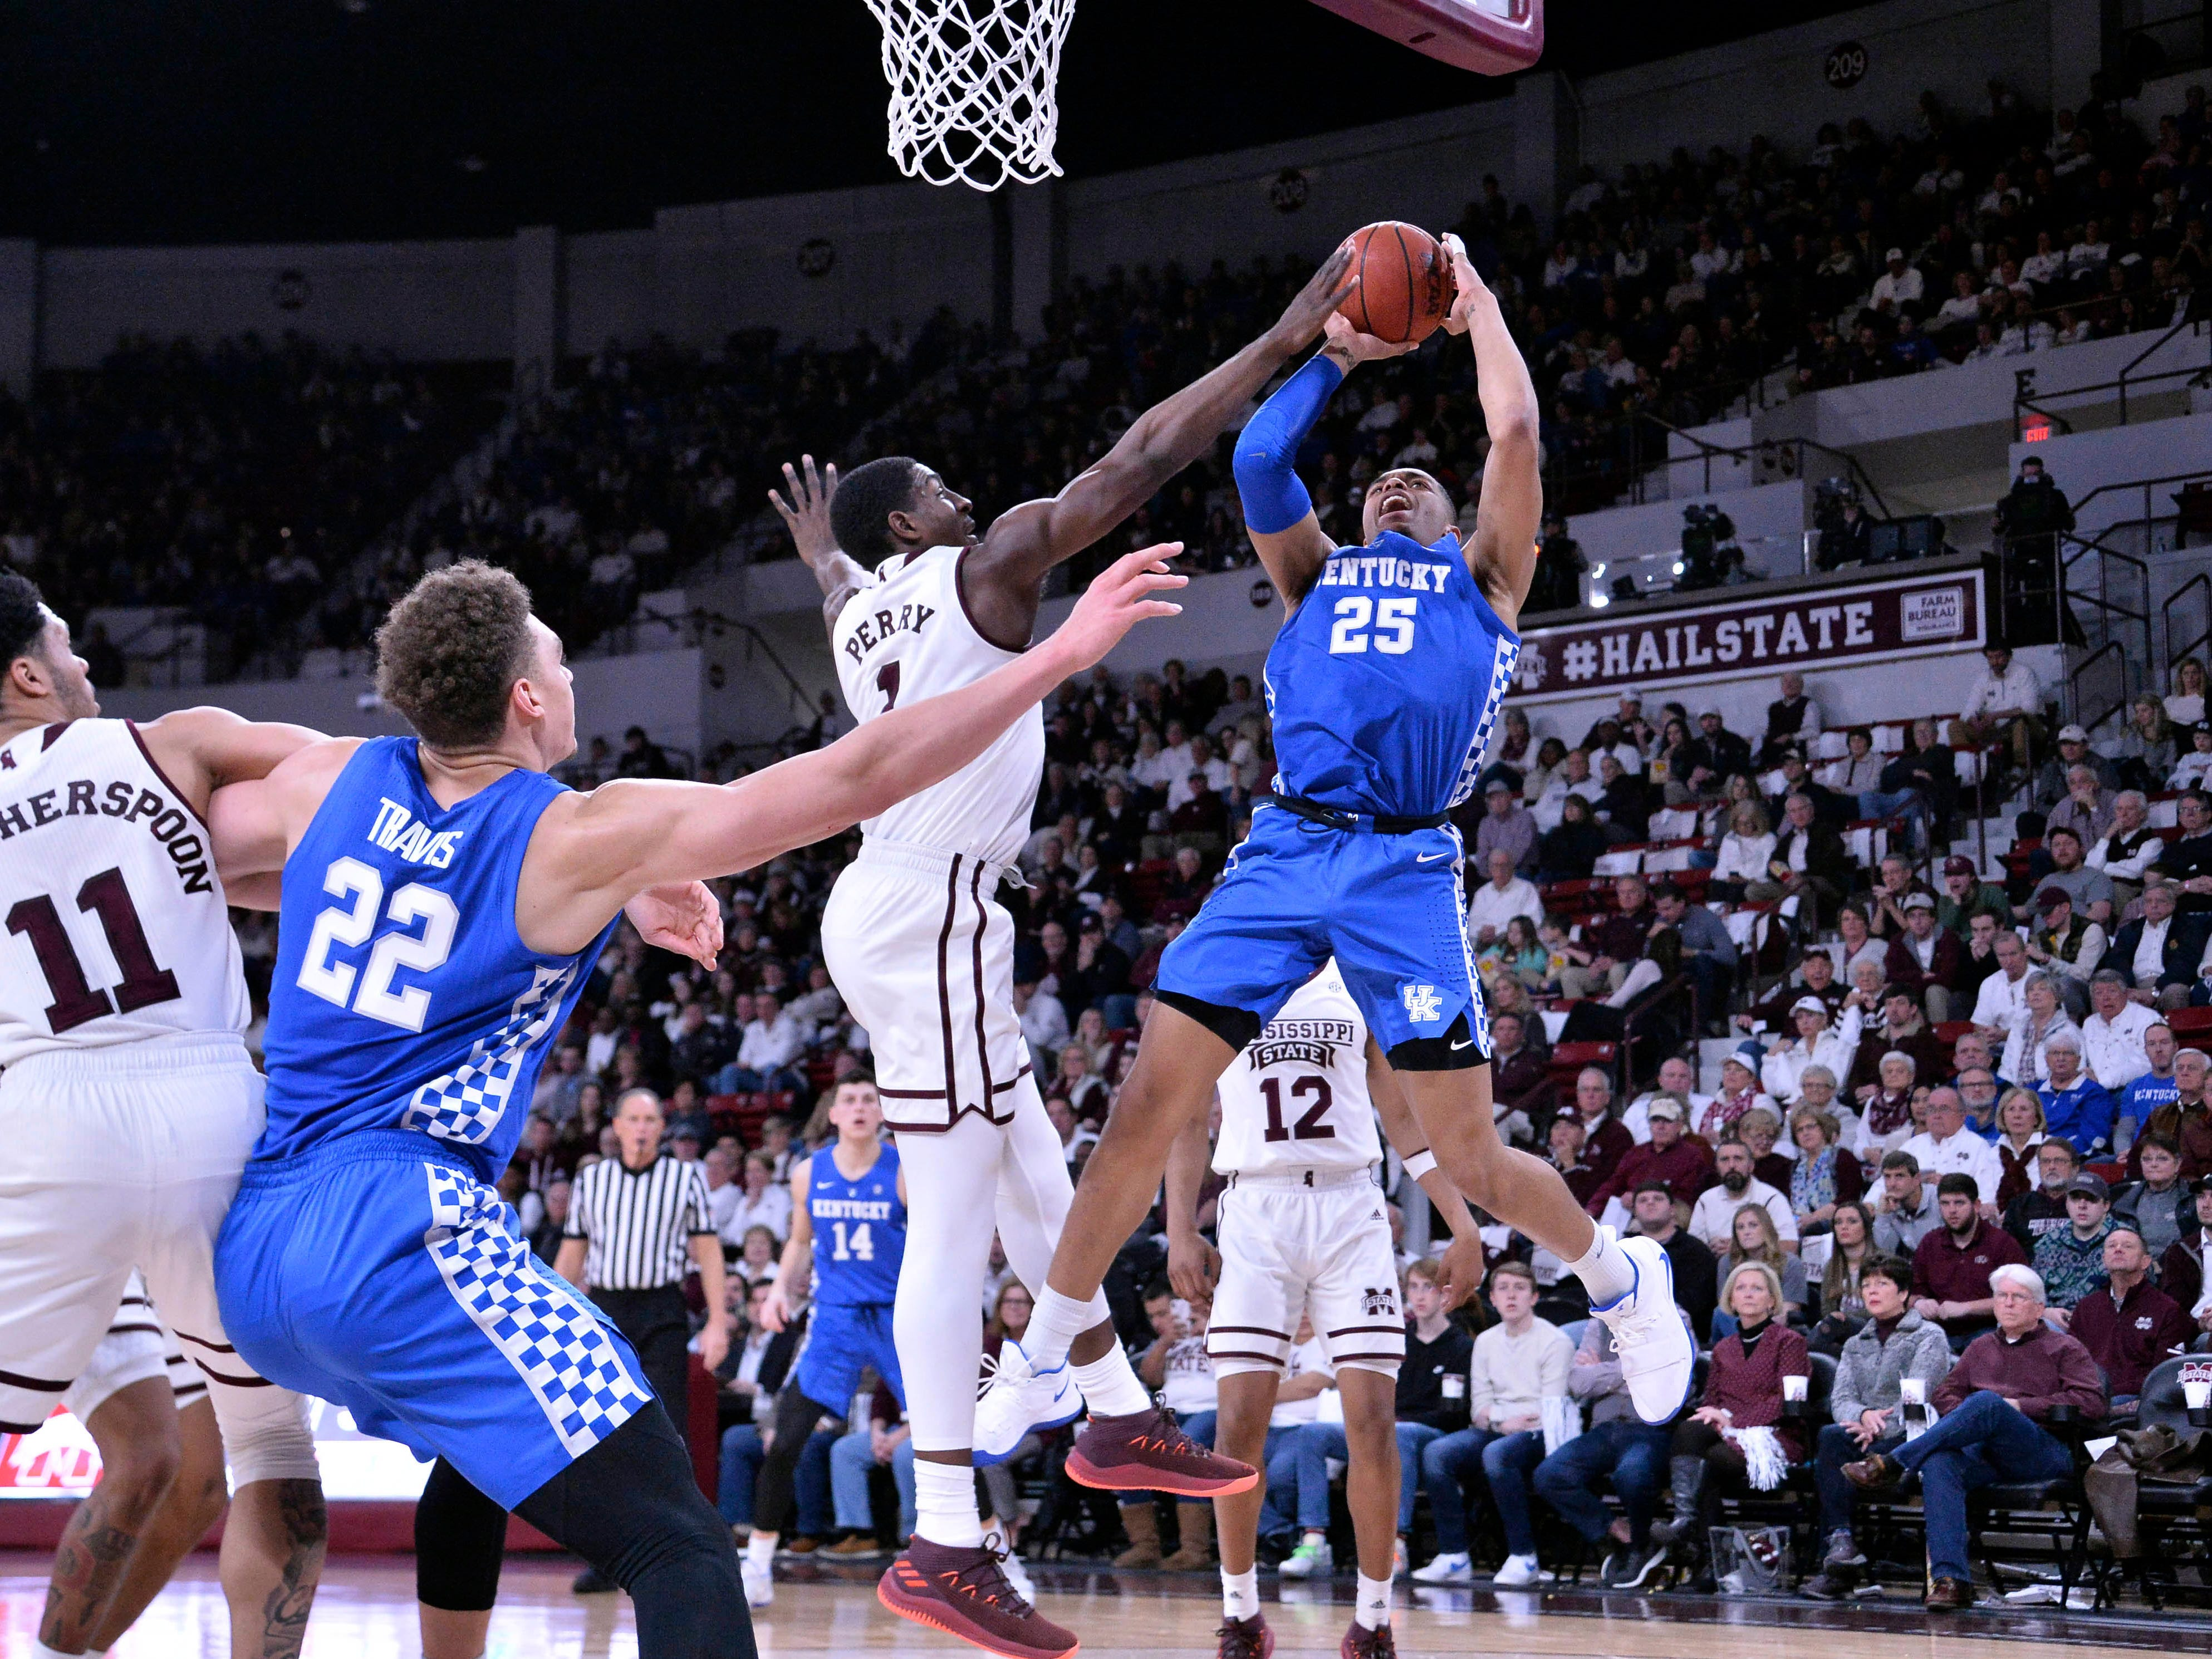 Kentucky Wildcats forward PJ Washington (25) goes up for a shot while being defended by Mississippi State Bulldogs forward Reggie Perry (1) during the first half at Humphrey Coliseum in Starkville, Mississippi, on Saturday, Feb. 9, 2019.